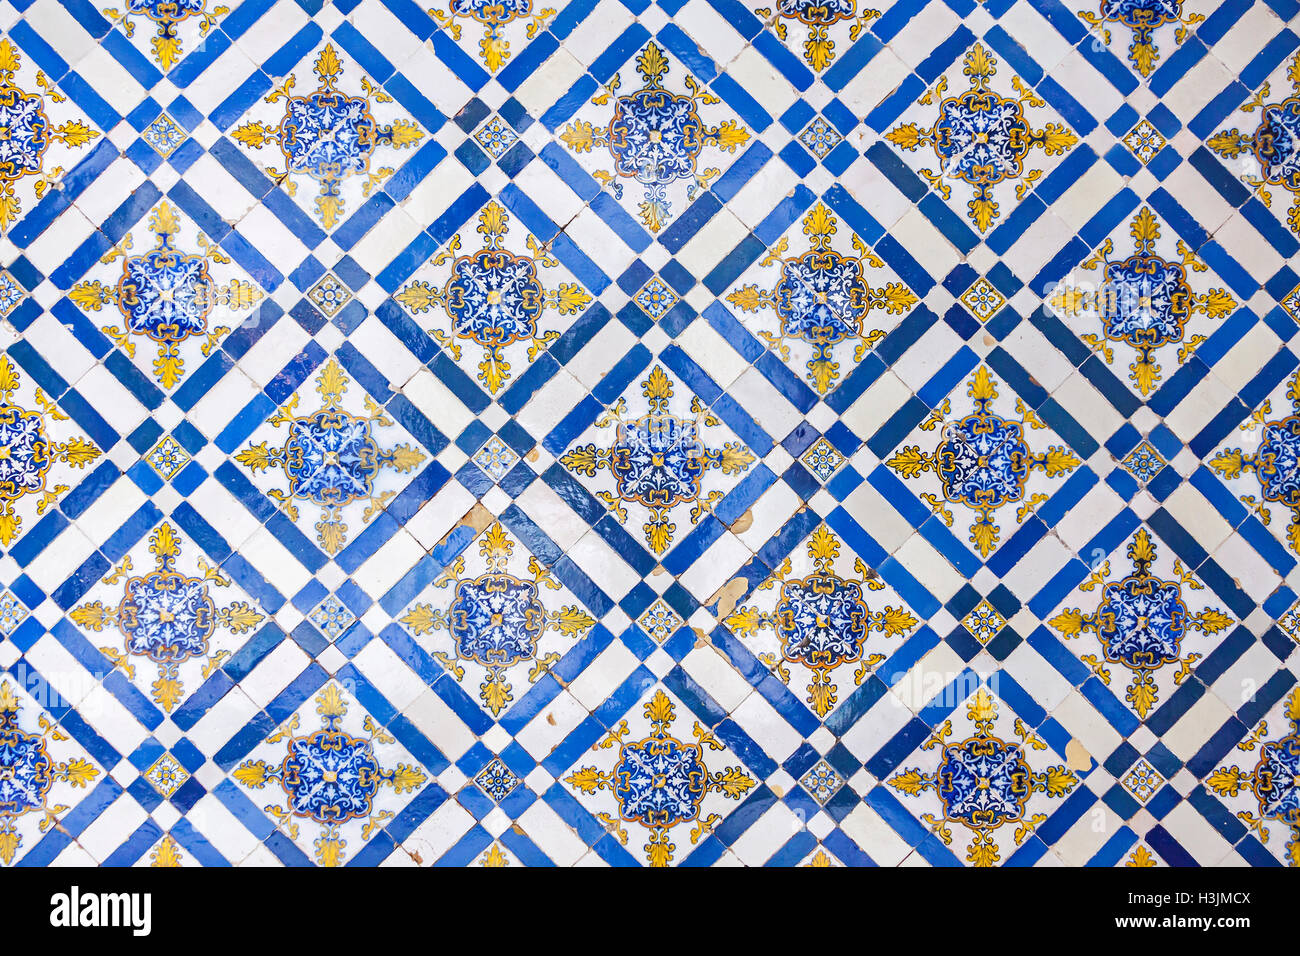 Azulejos Exterior Typical Portuguese Old Ceramic Wall Tiles Azulejos On